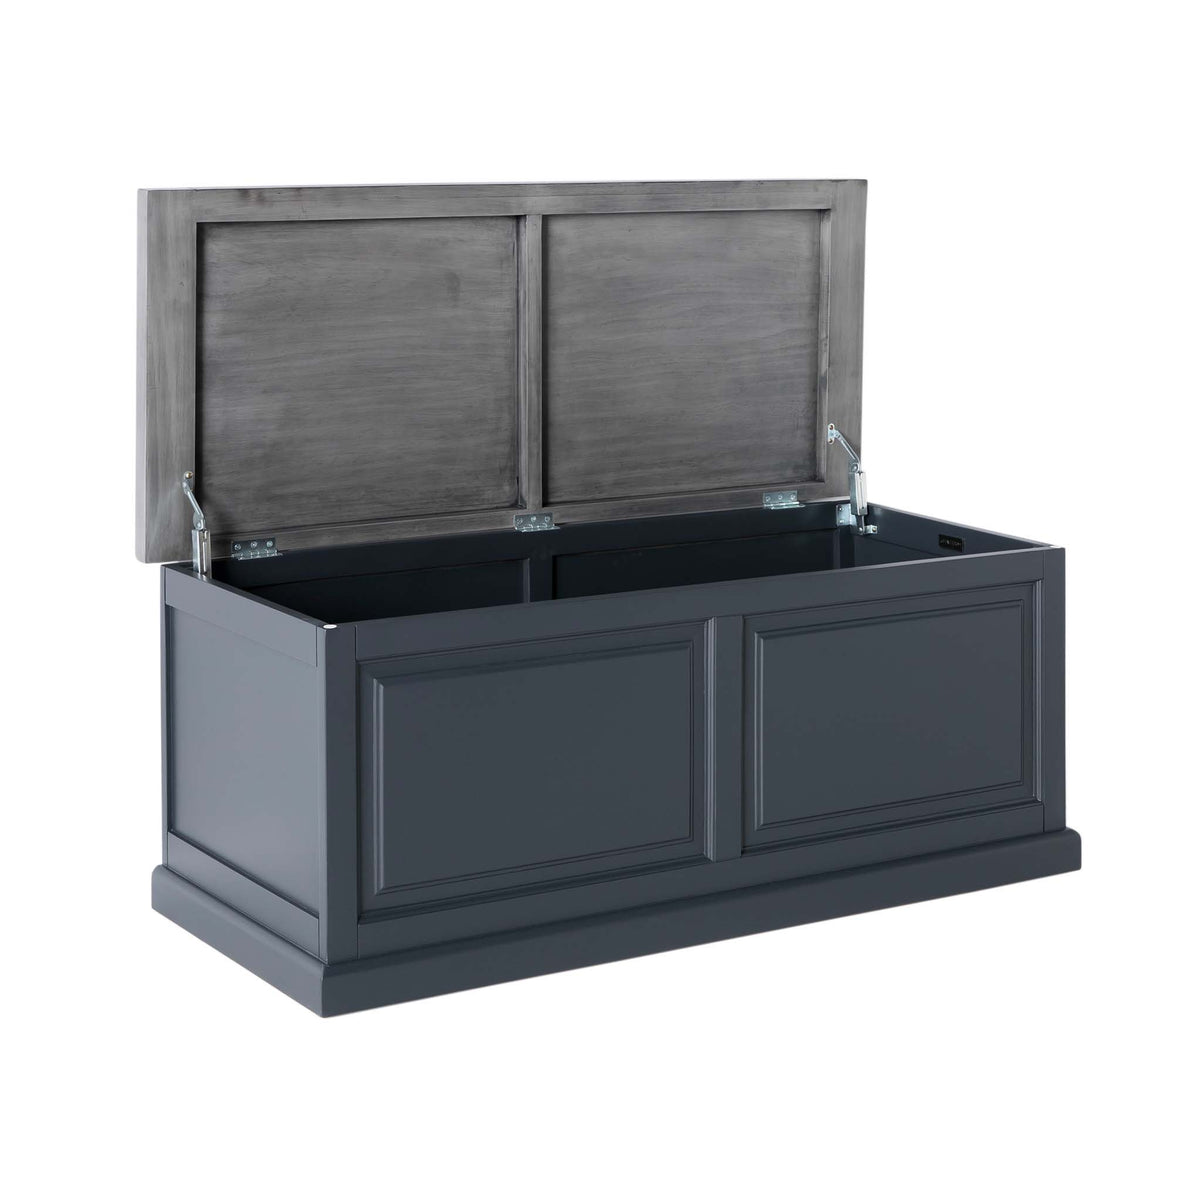 Bristol Charcoal Blanket Box with lid open